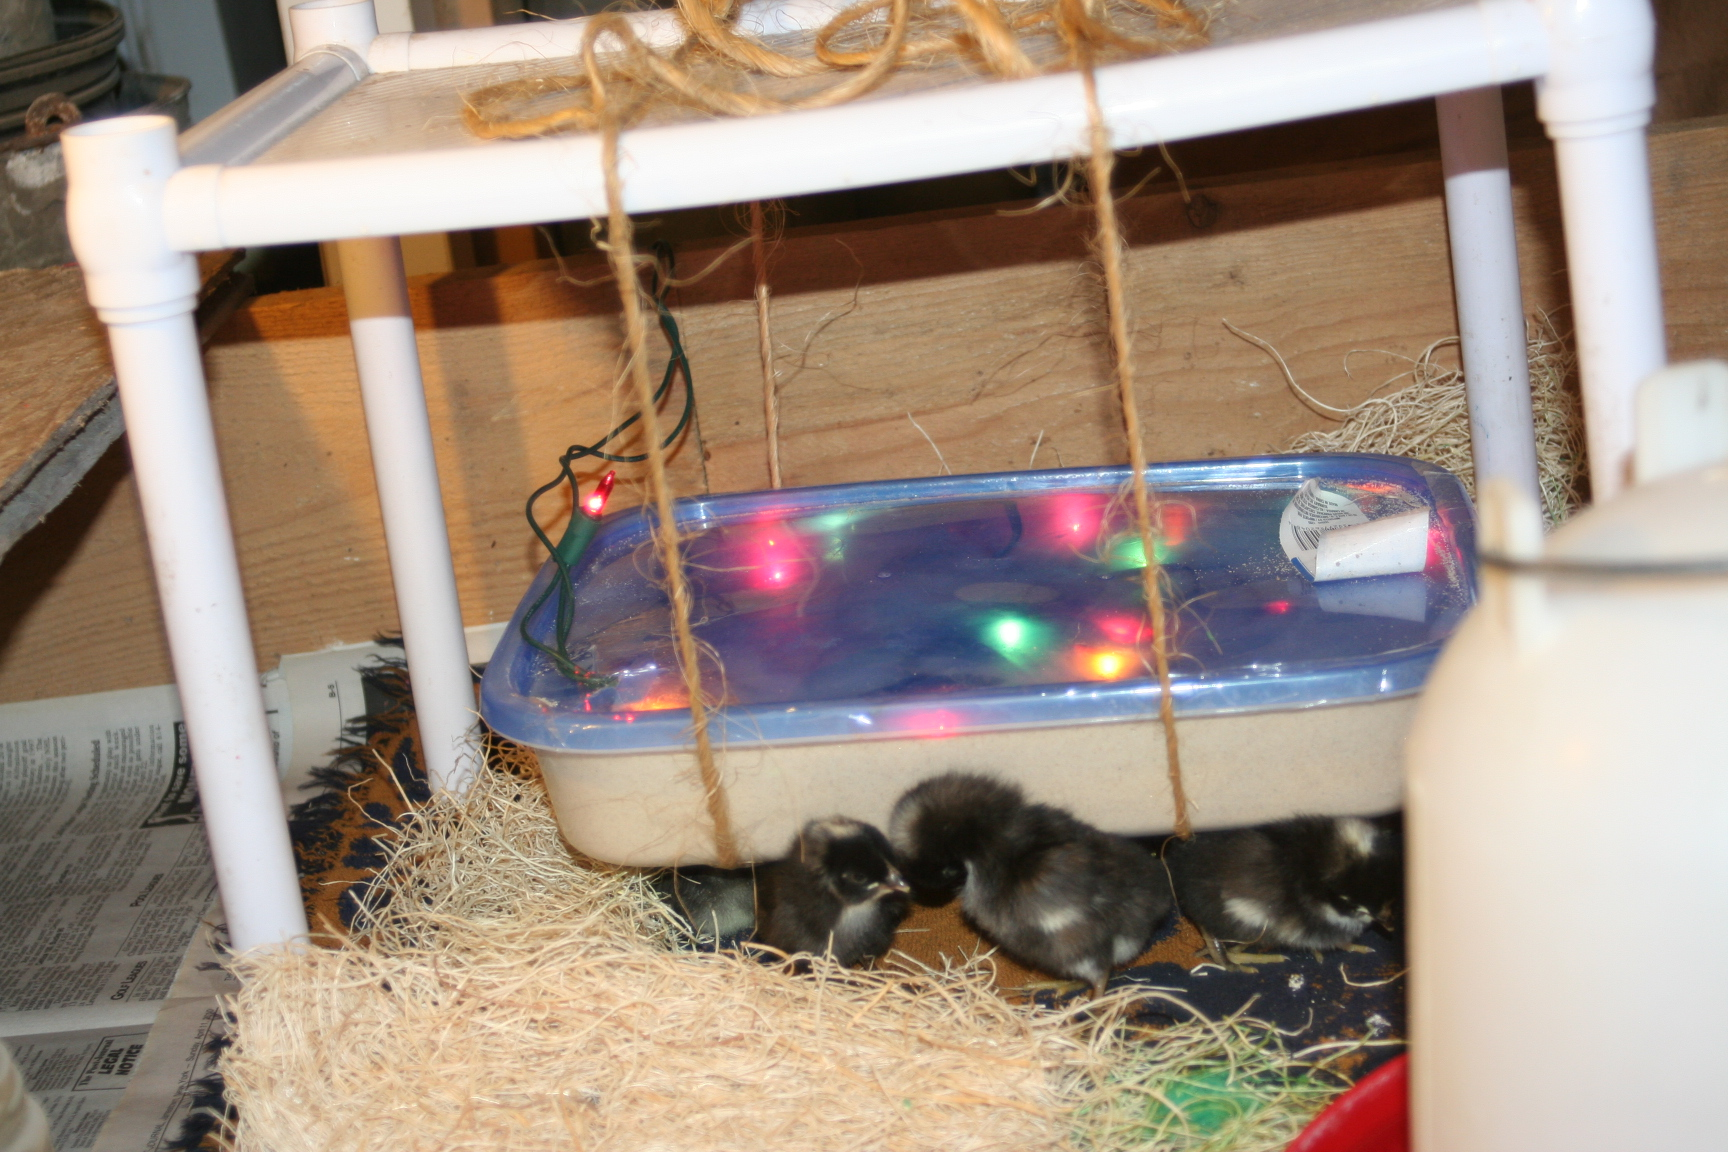 Homemade diy version of an ecoglow style brooder pure for Homemade diy